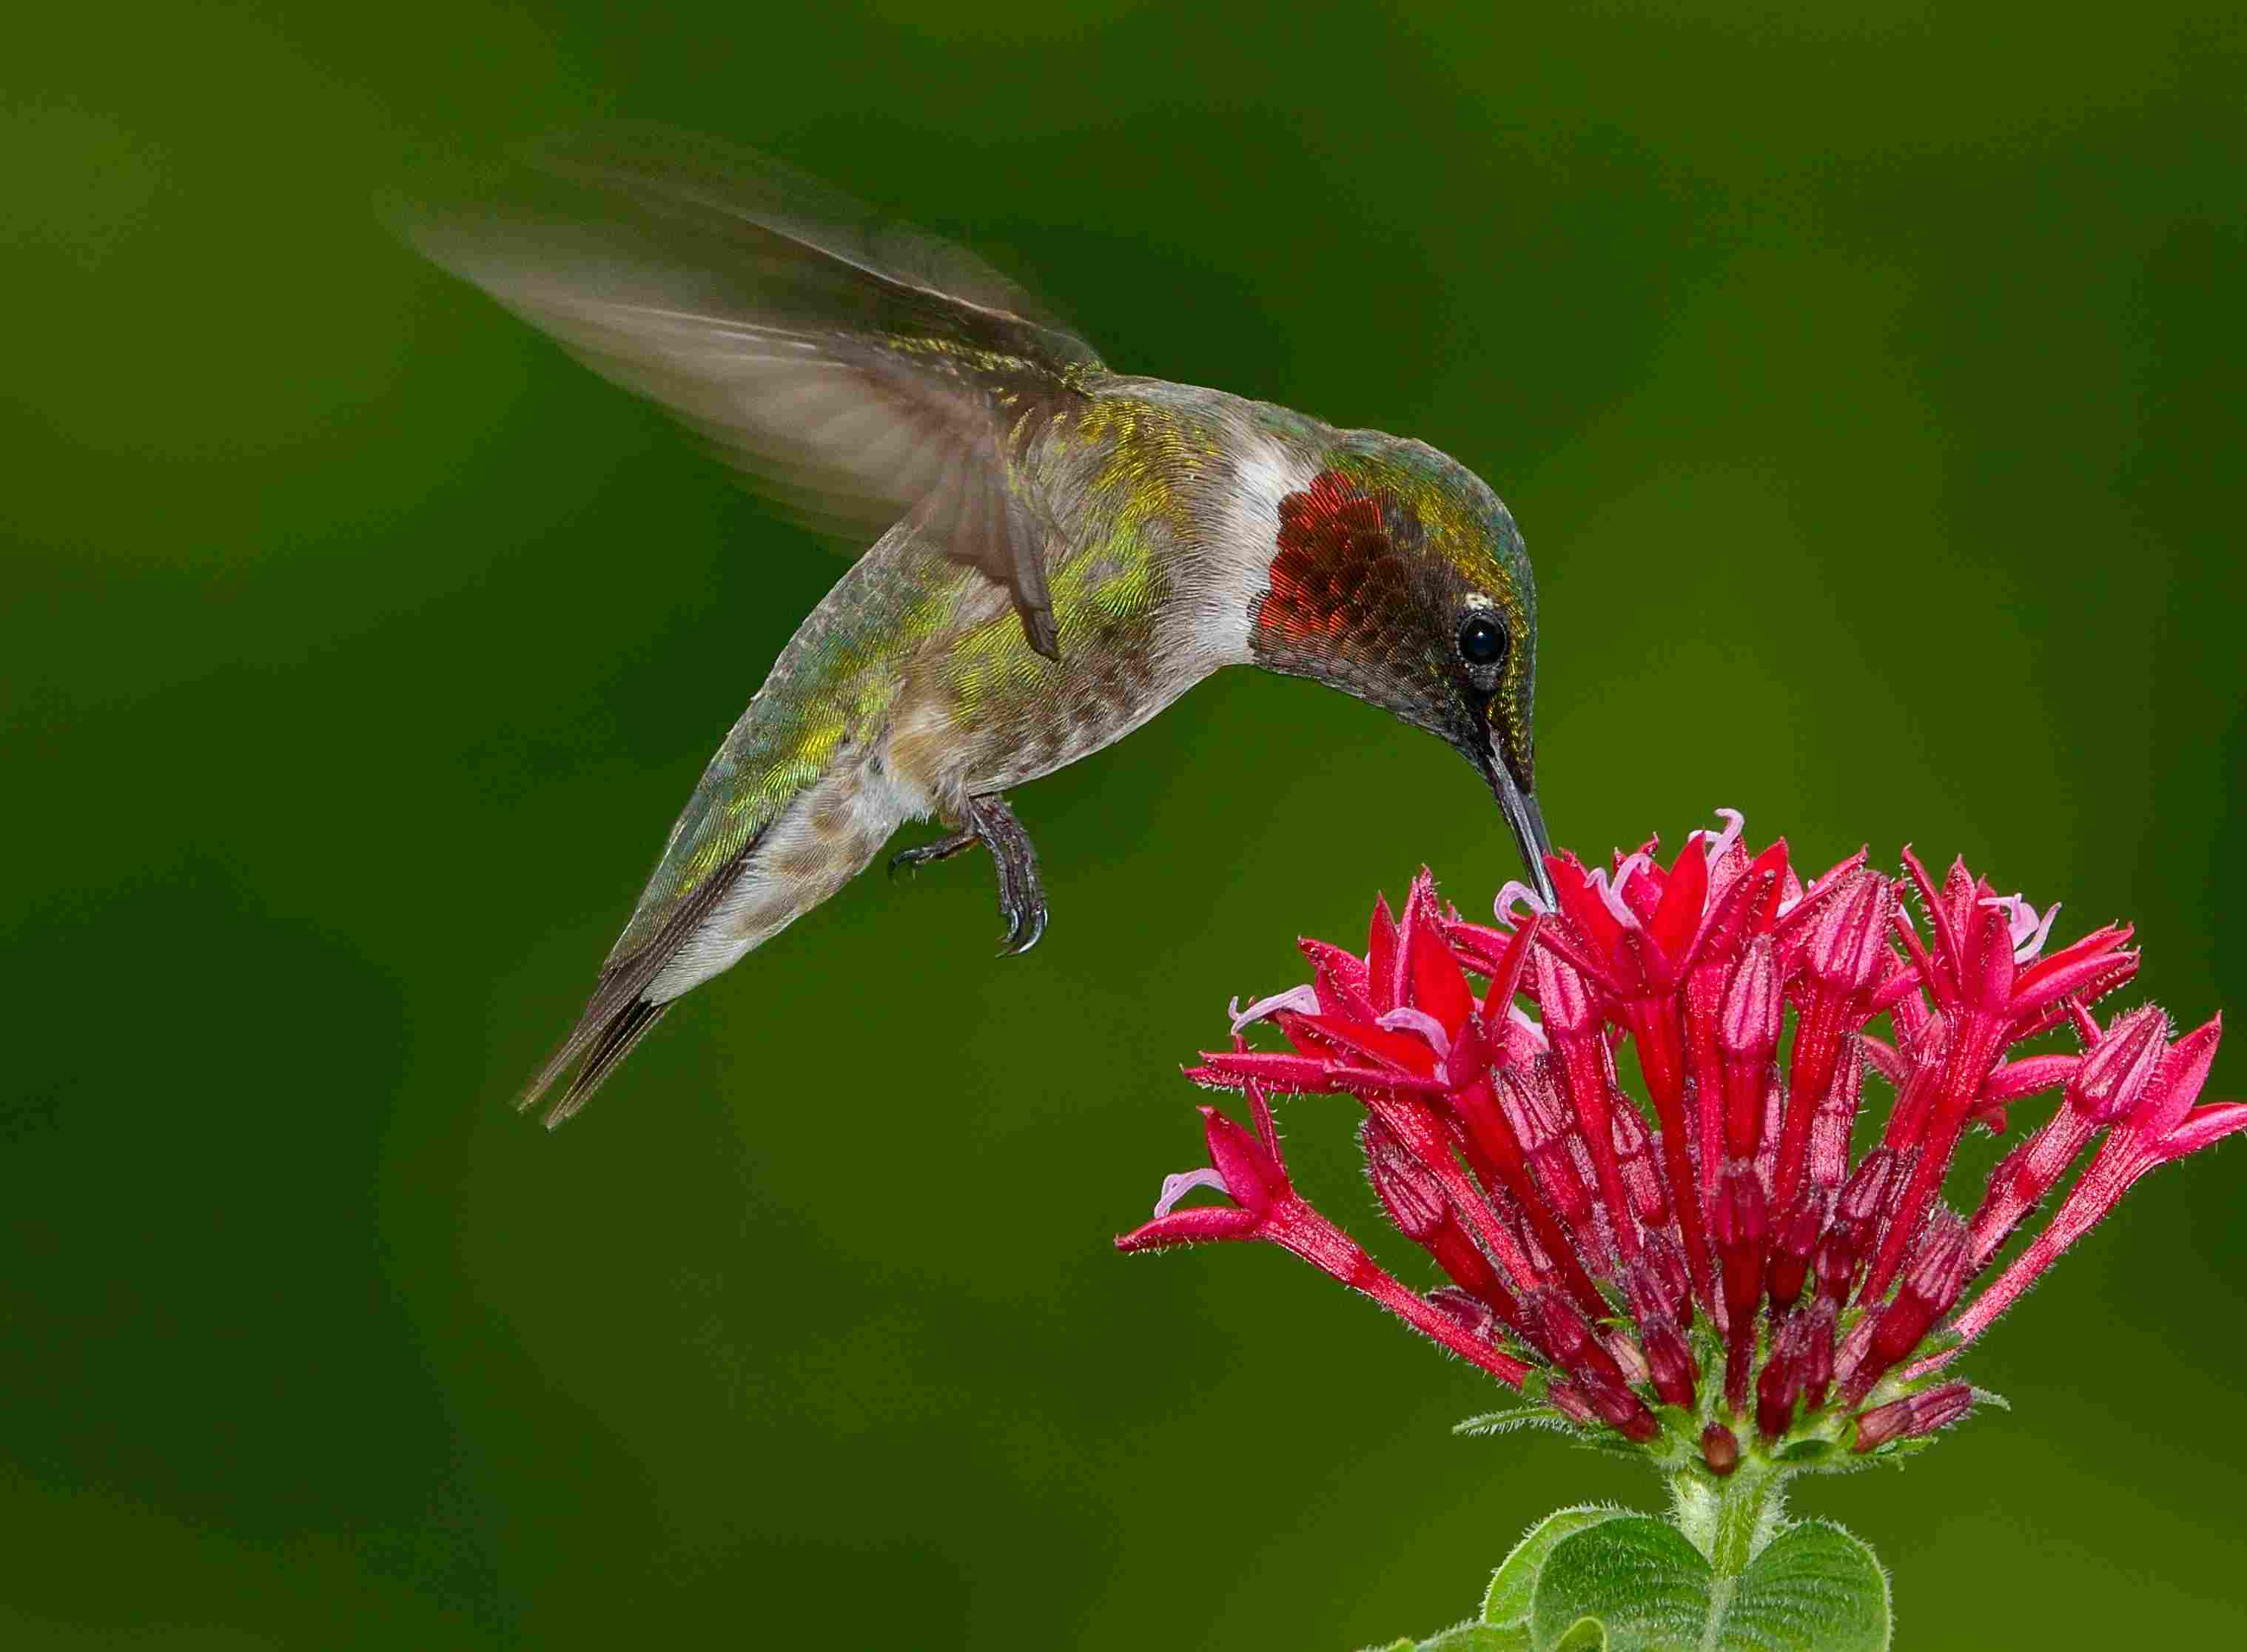 A male Ruby-throat Hummingbird in flight hovering and drinking from a cluster of small red flowers against a green background